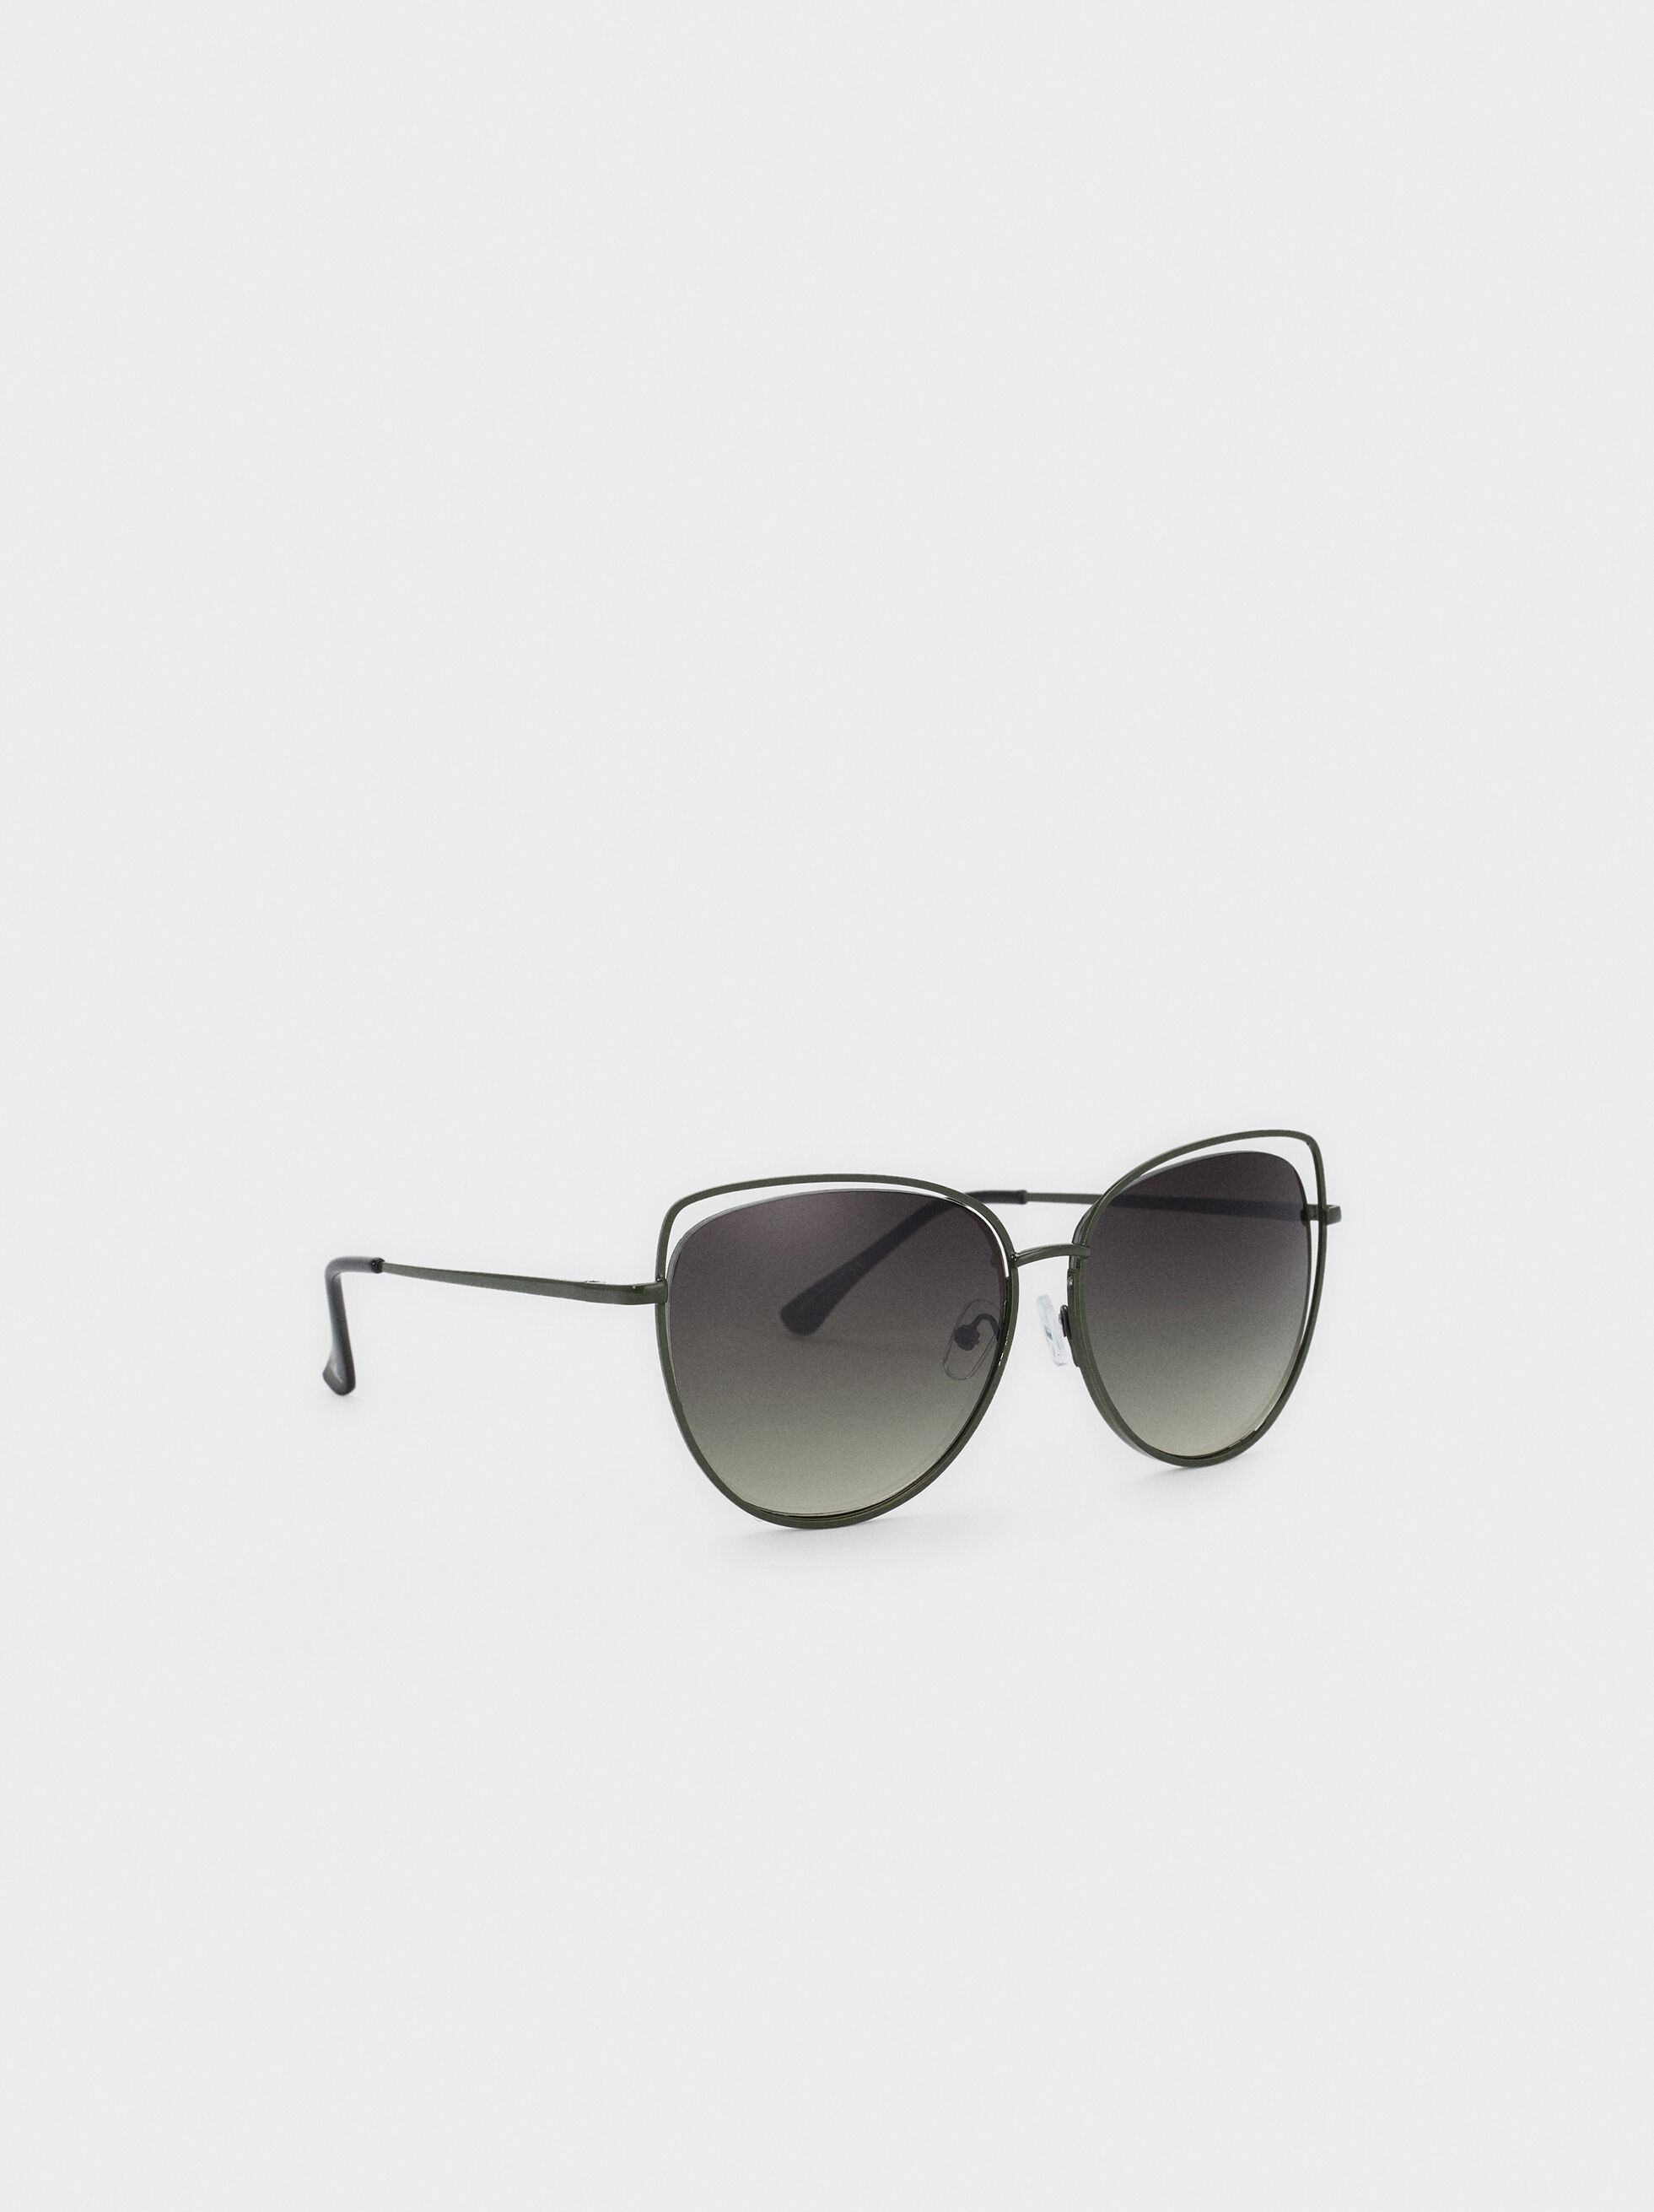 Cat Eye Sunglasses, Green, hi-res